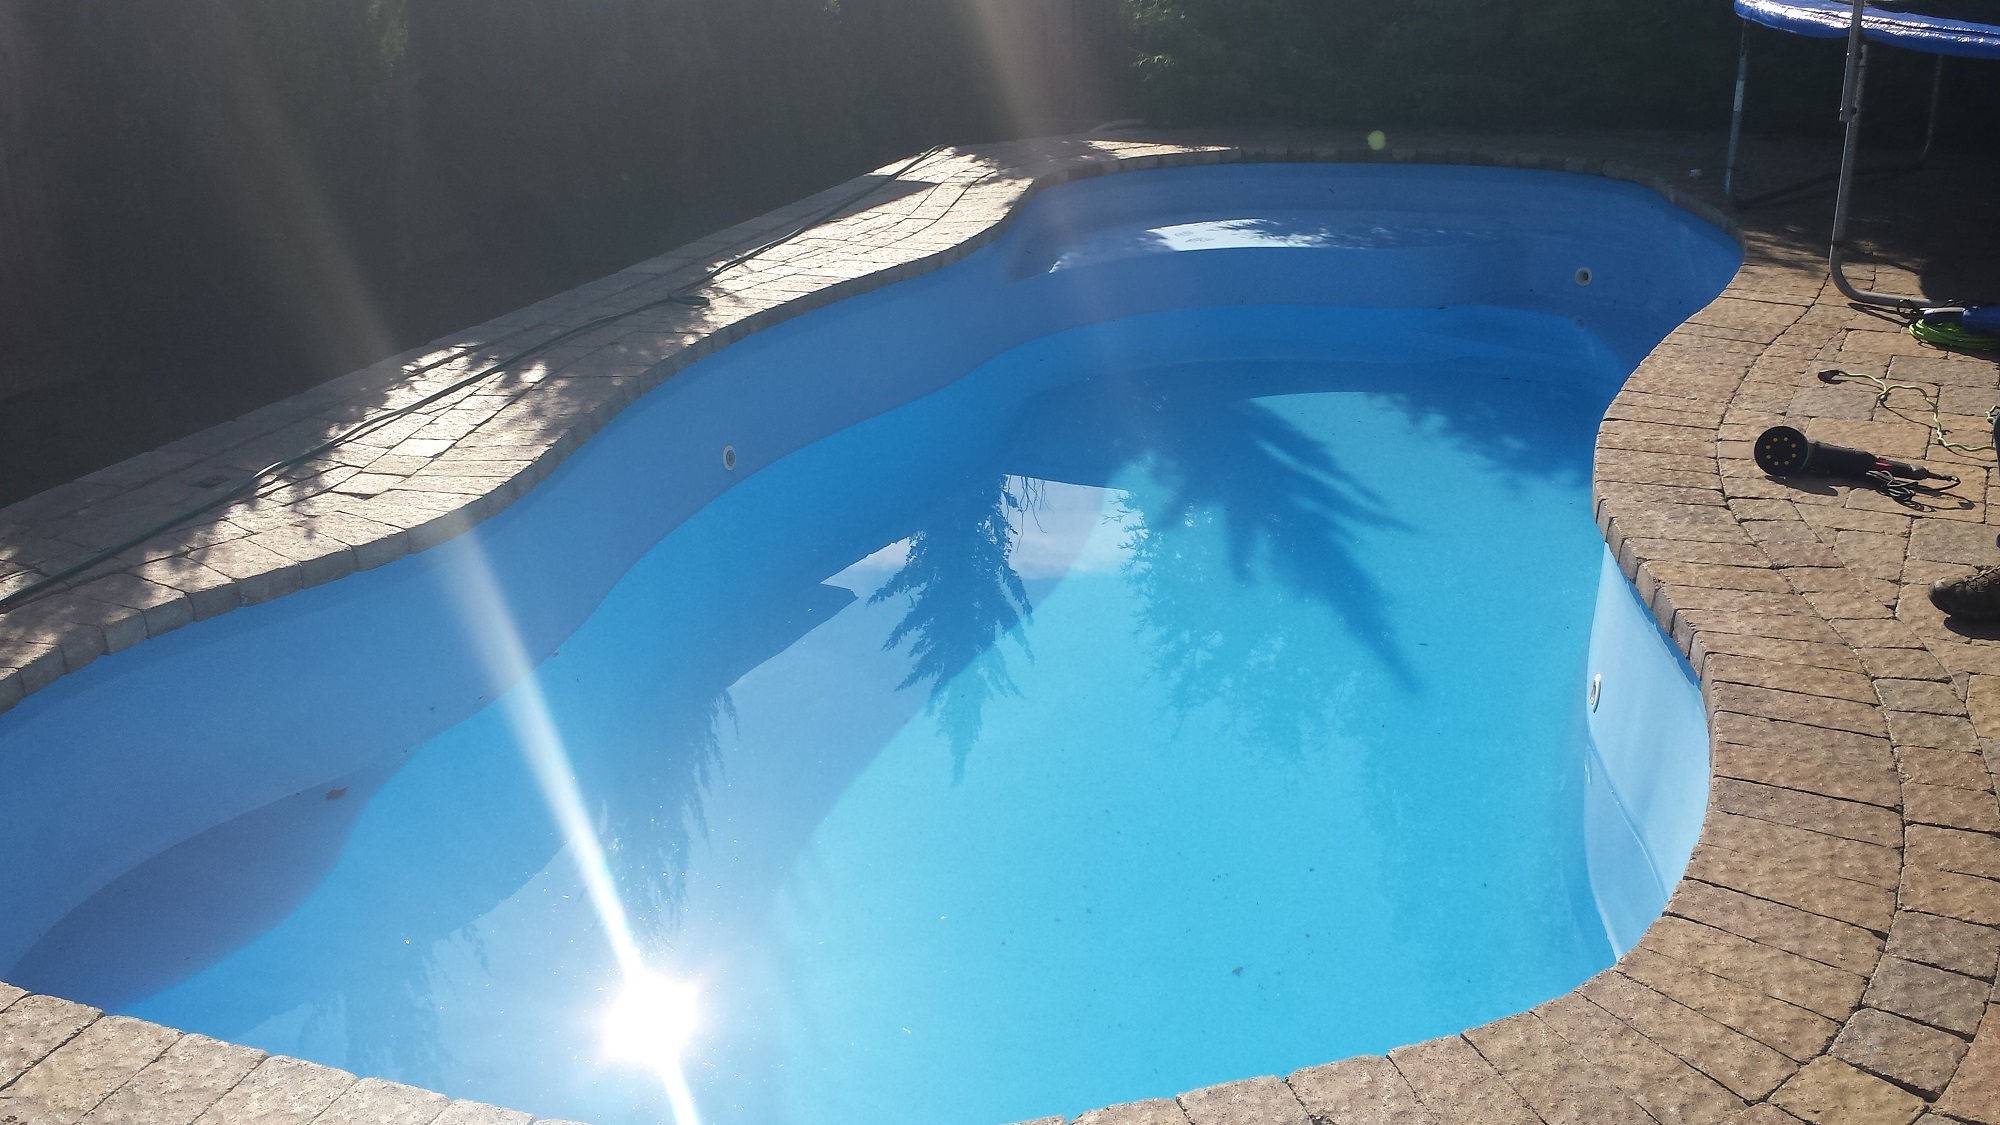 Finished glowing example of newly restored fiberglass pool